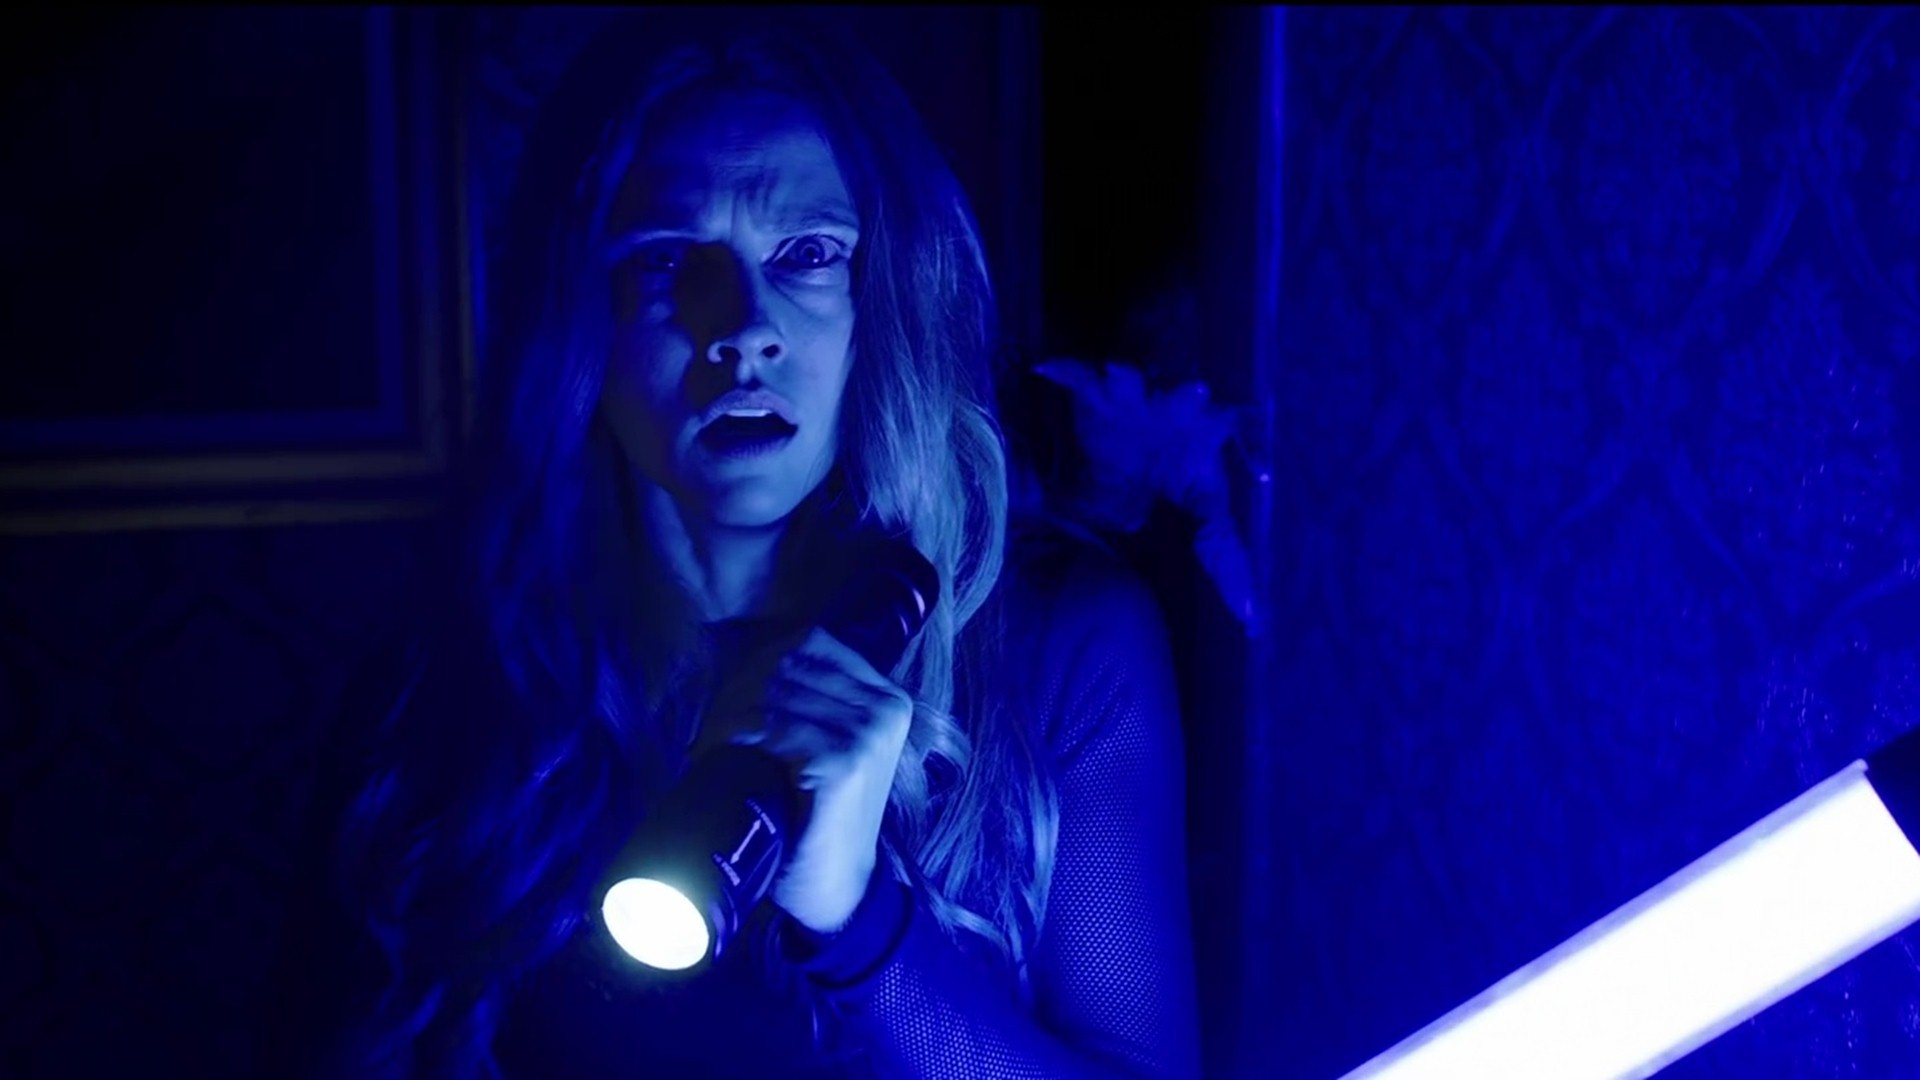 Tags: Lights Out. Category: Movies